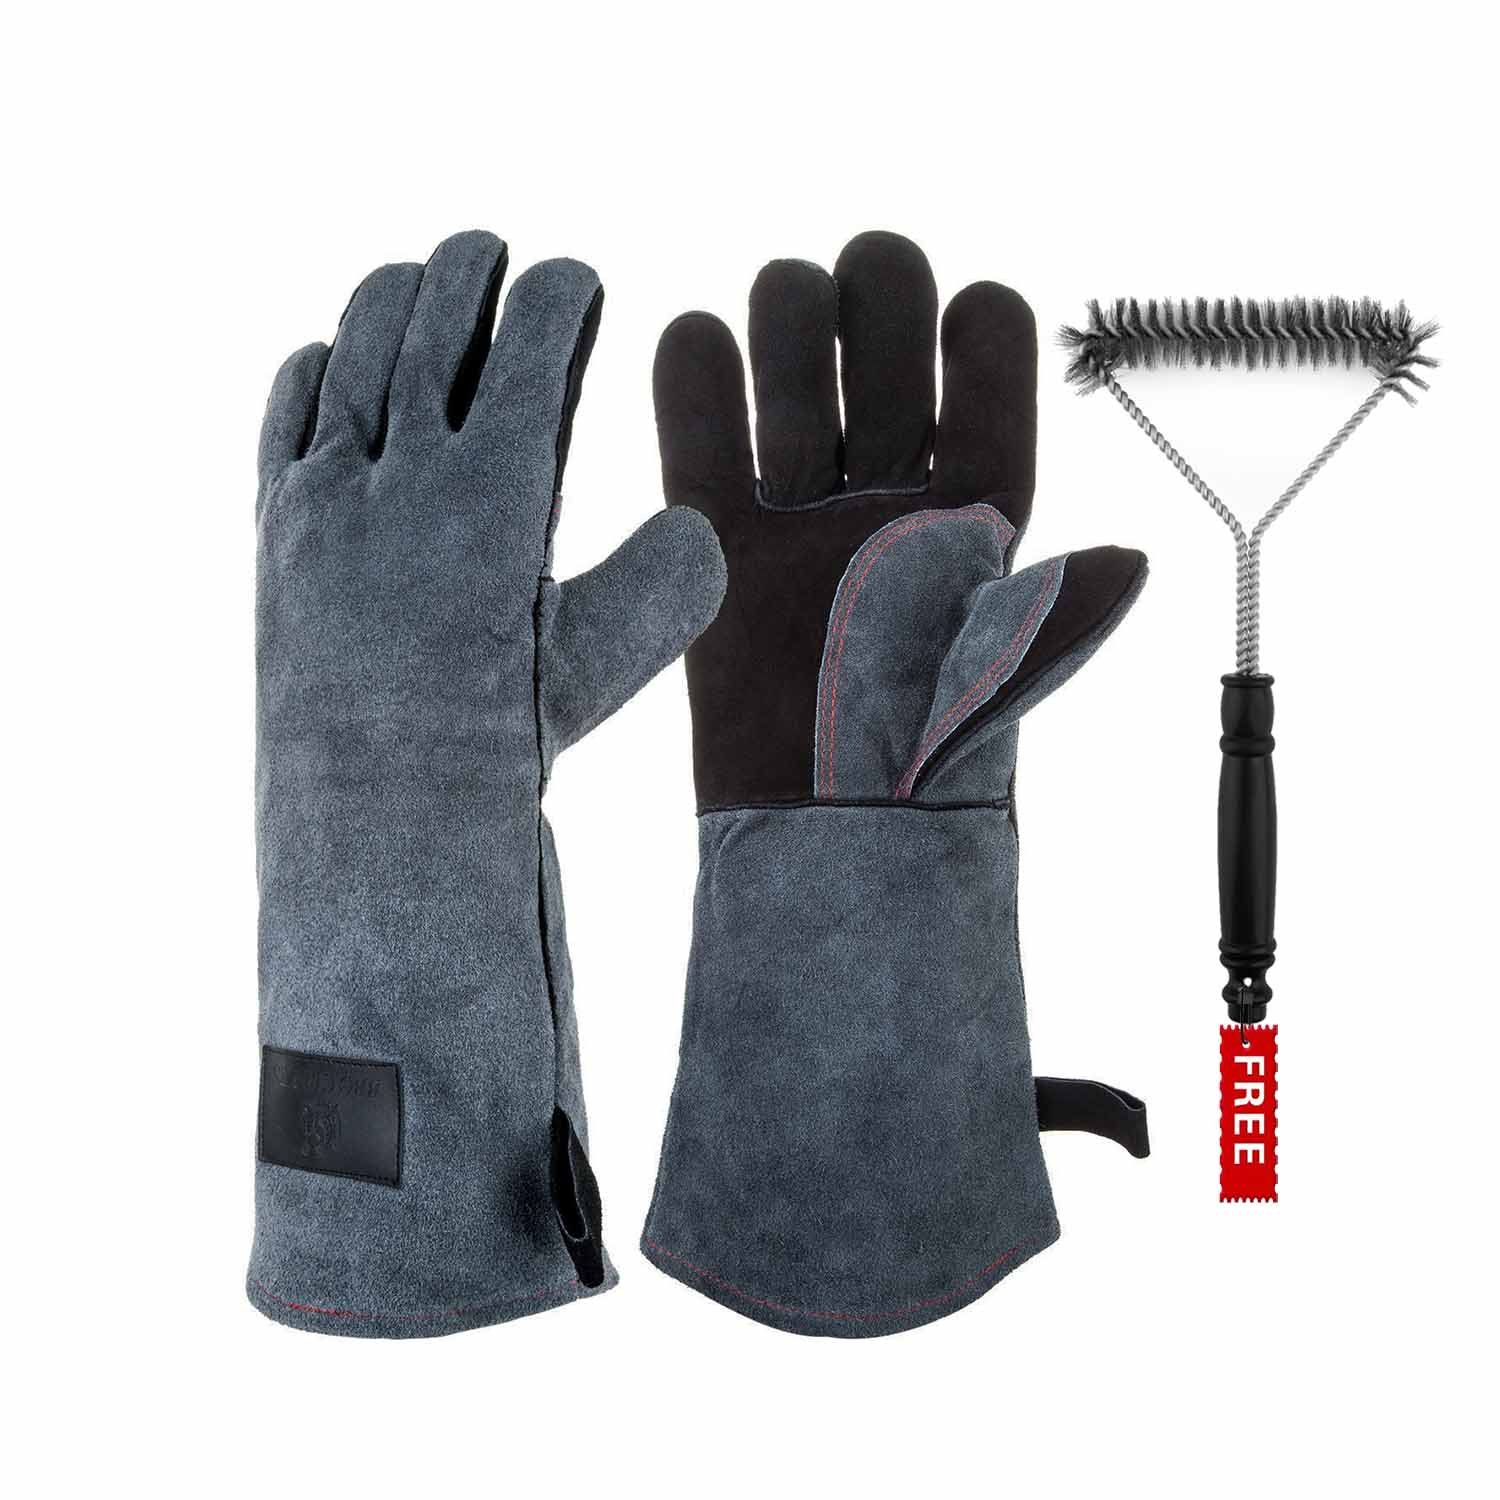 Heat Resistant Gloves & Free grill brush, BBQ Fireplace Gloves, 16-Inch Extra Long Sleeve Barbecue Grill Leather Glove Coopache